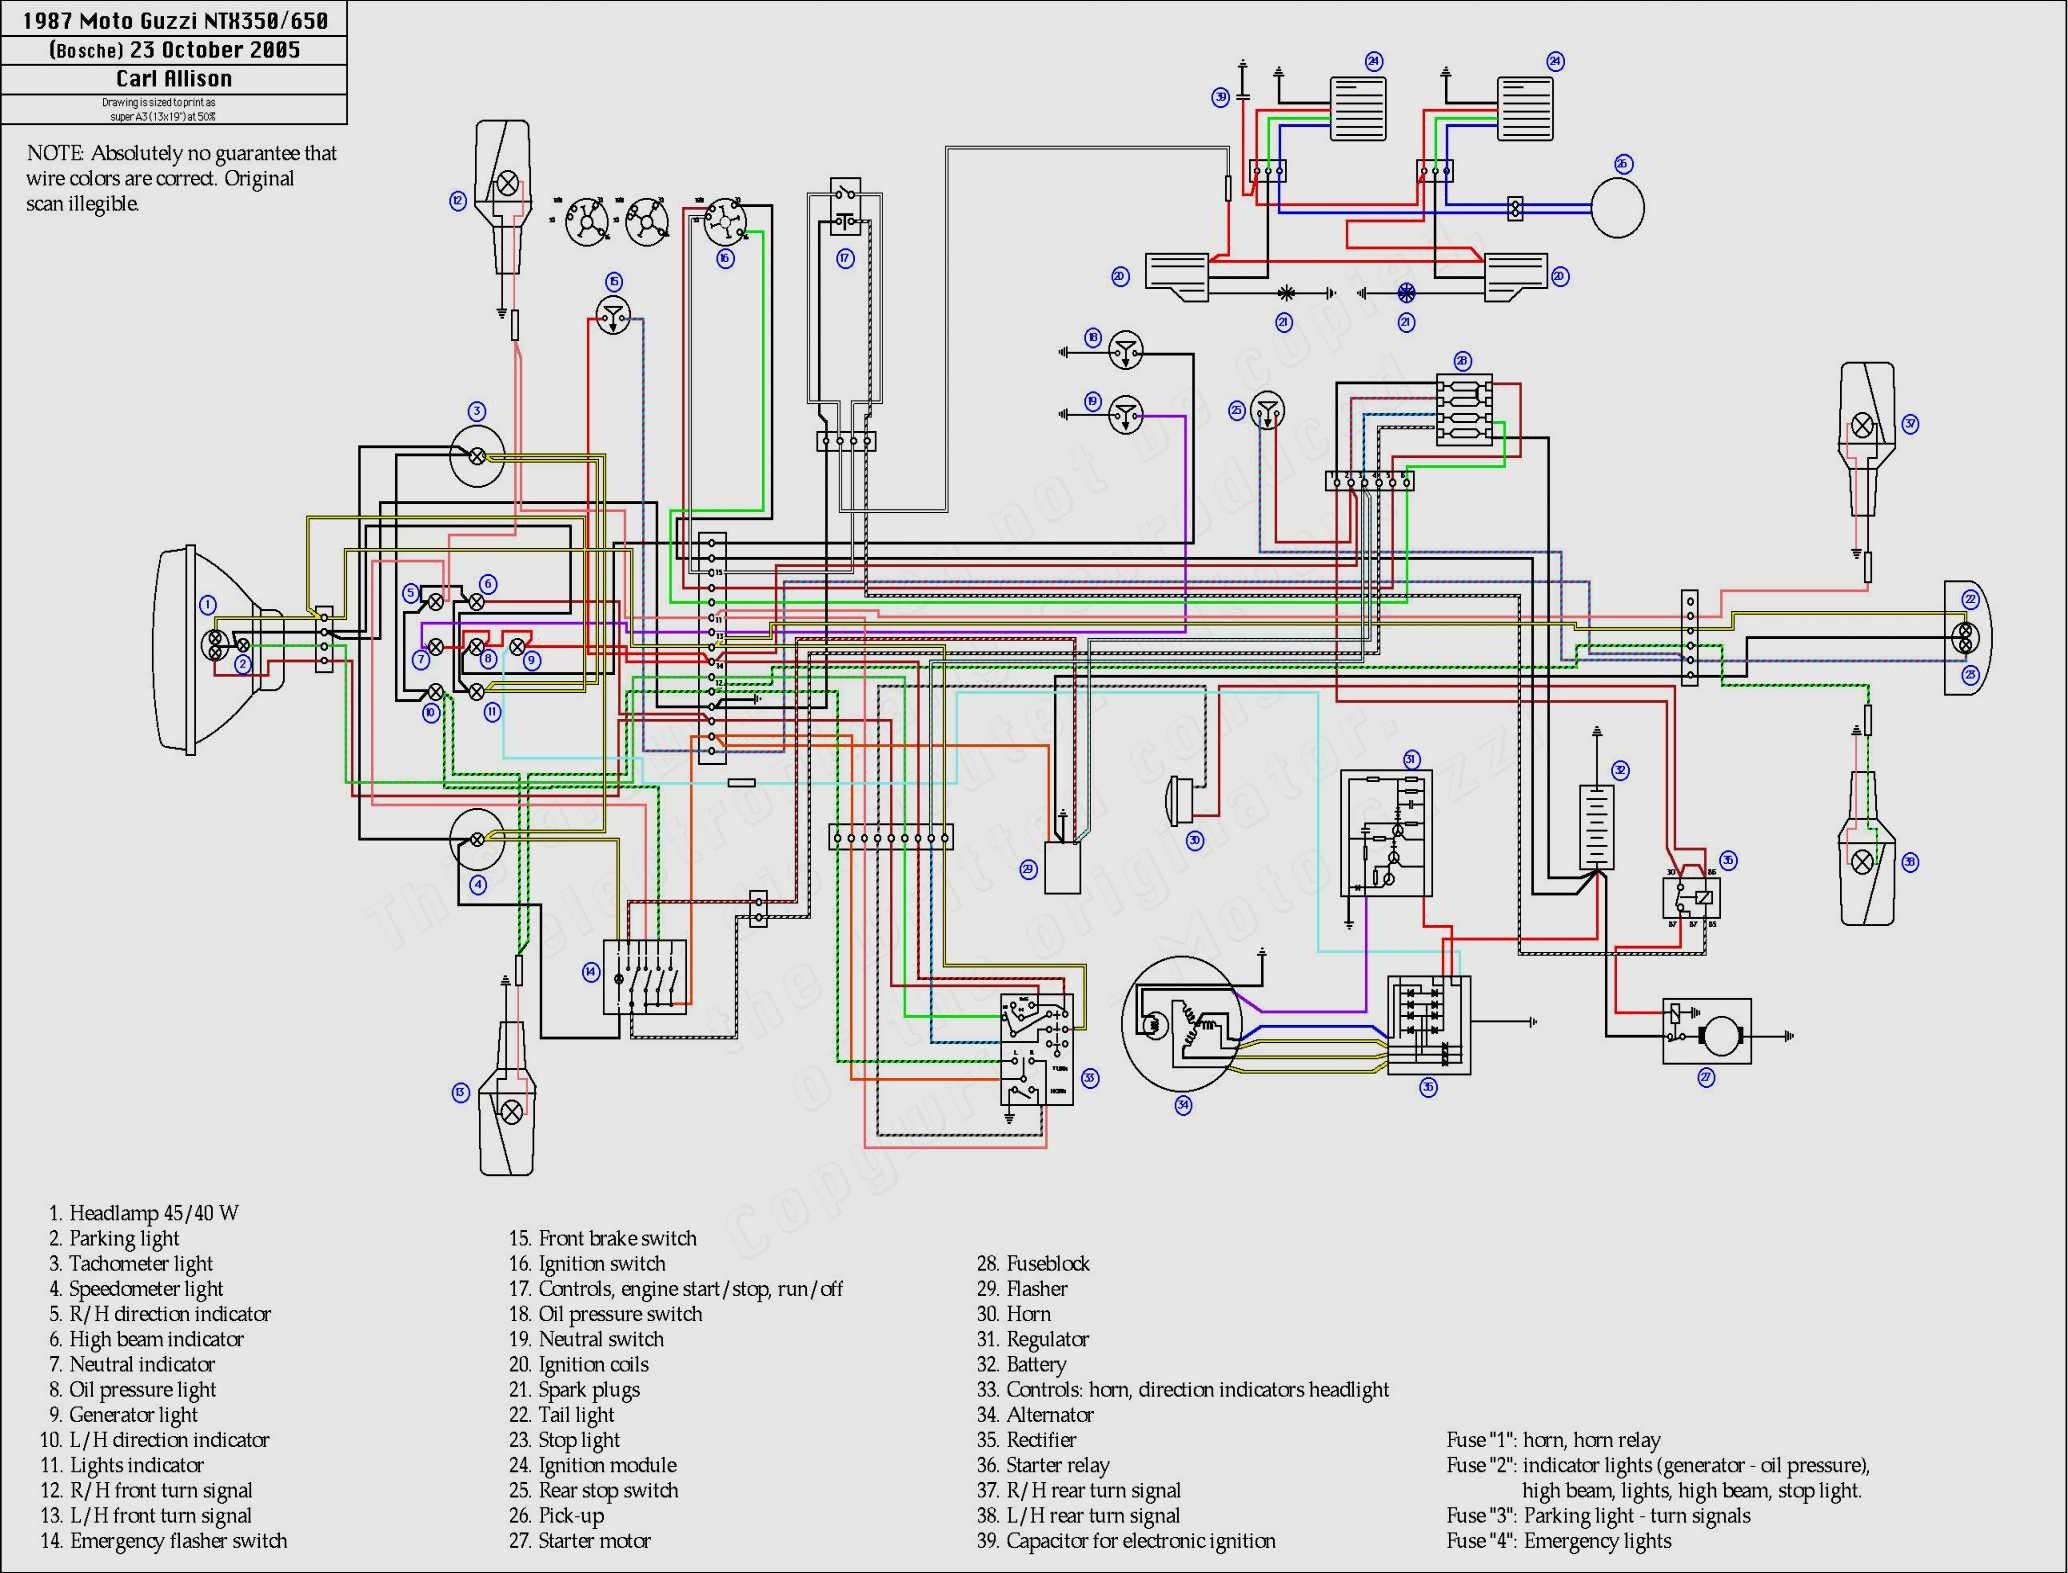 Diagramsample Diagramformats Diagramtemplate Electrical Diagram Electrical Wiring Diagram Diagram